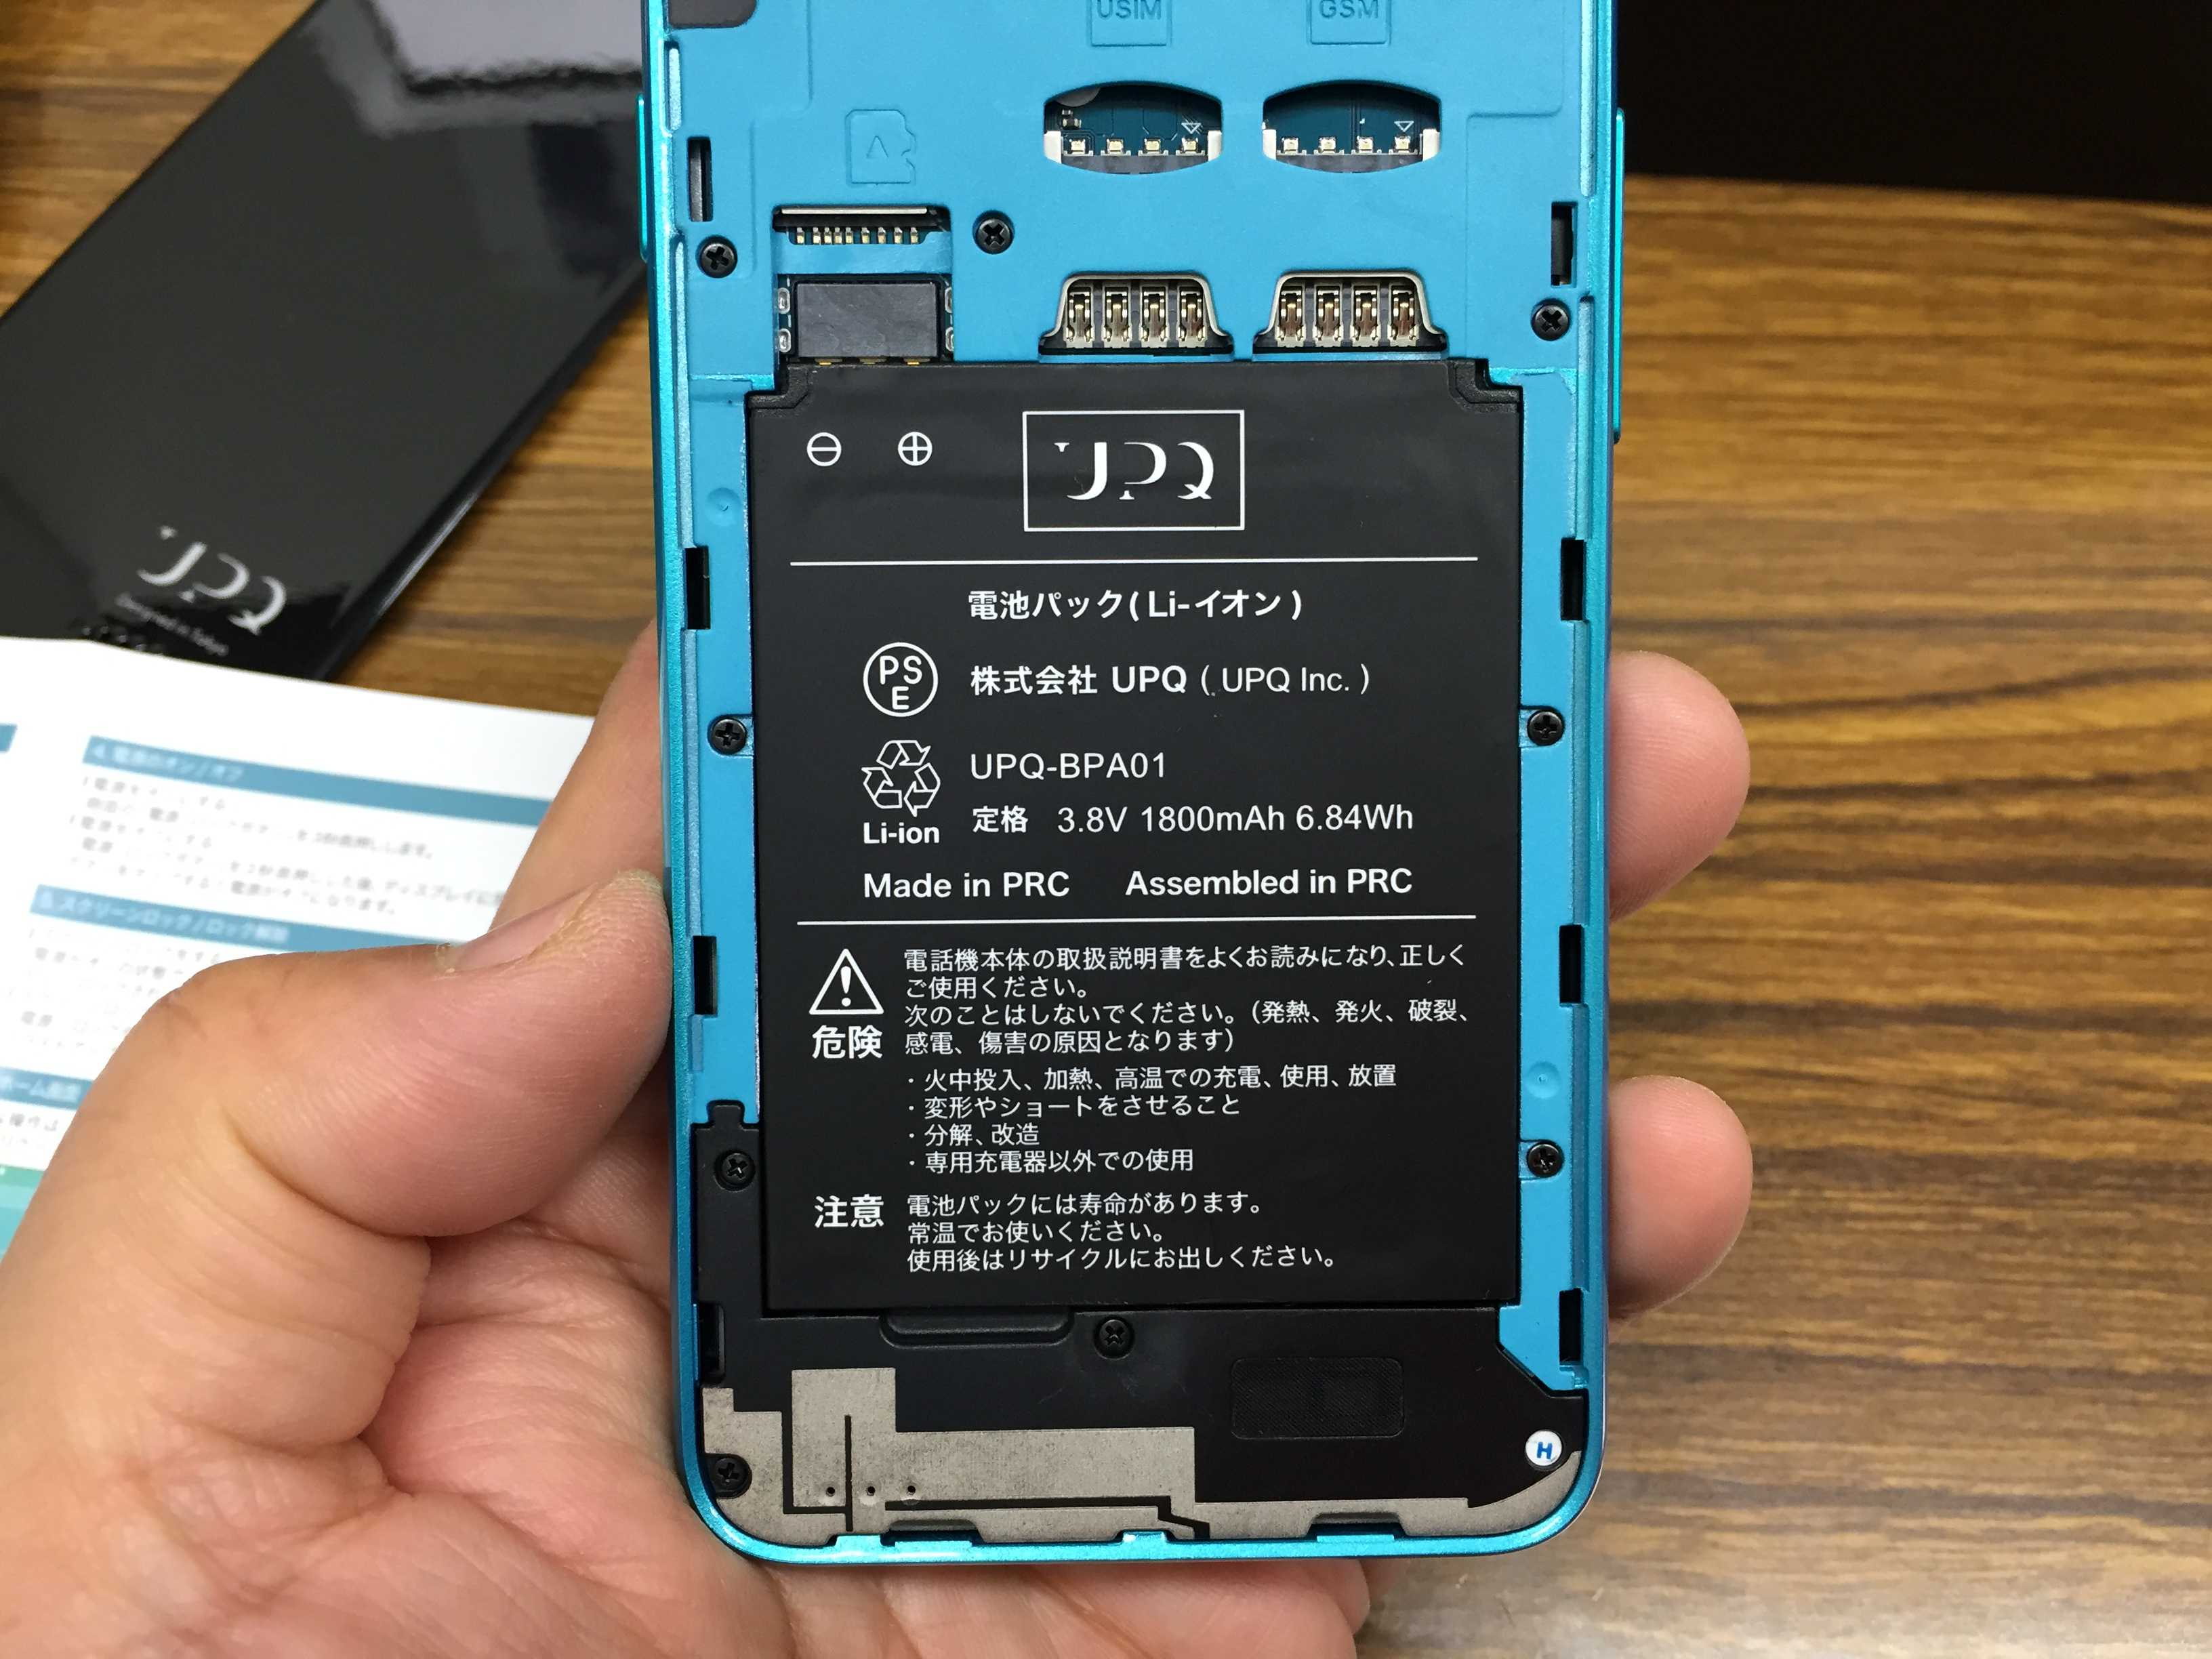 SIMフリースマホ: UPQ(アップ・キュー)Phone A01 - Made in PRC(中華人民共和国)、Assembled in PRC(中華人民共和国)